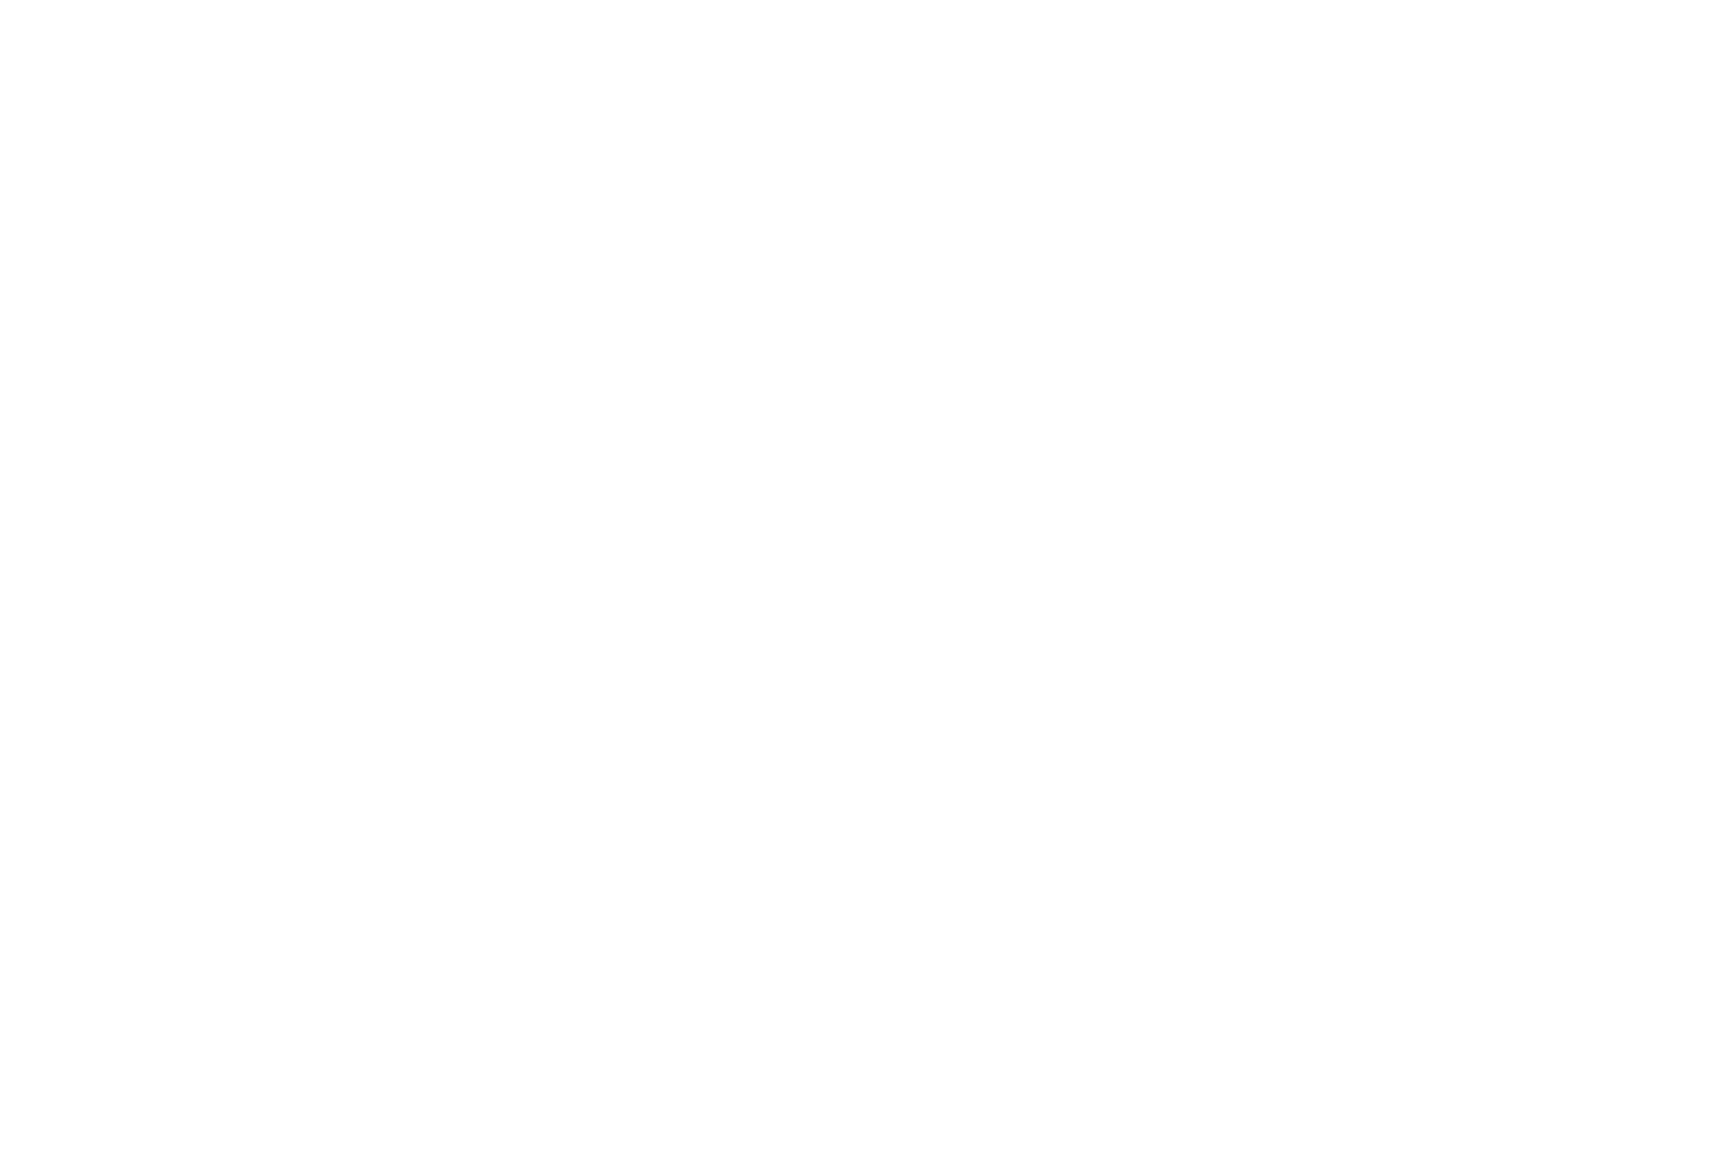 BEST DIRECTOR - Christian Film Festival - 2017.png